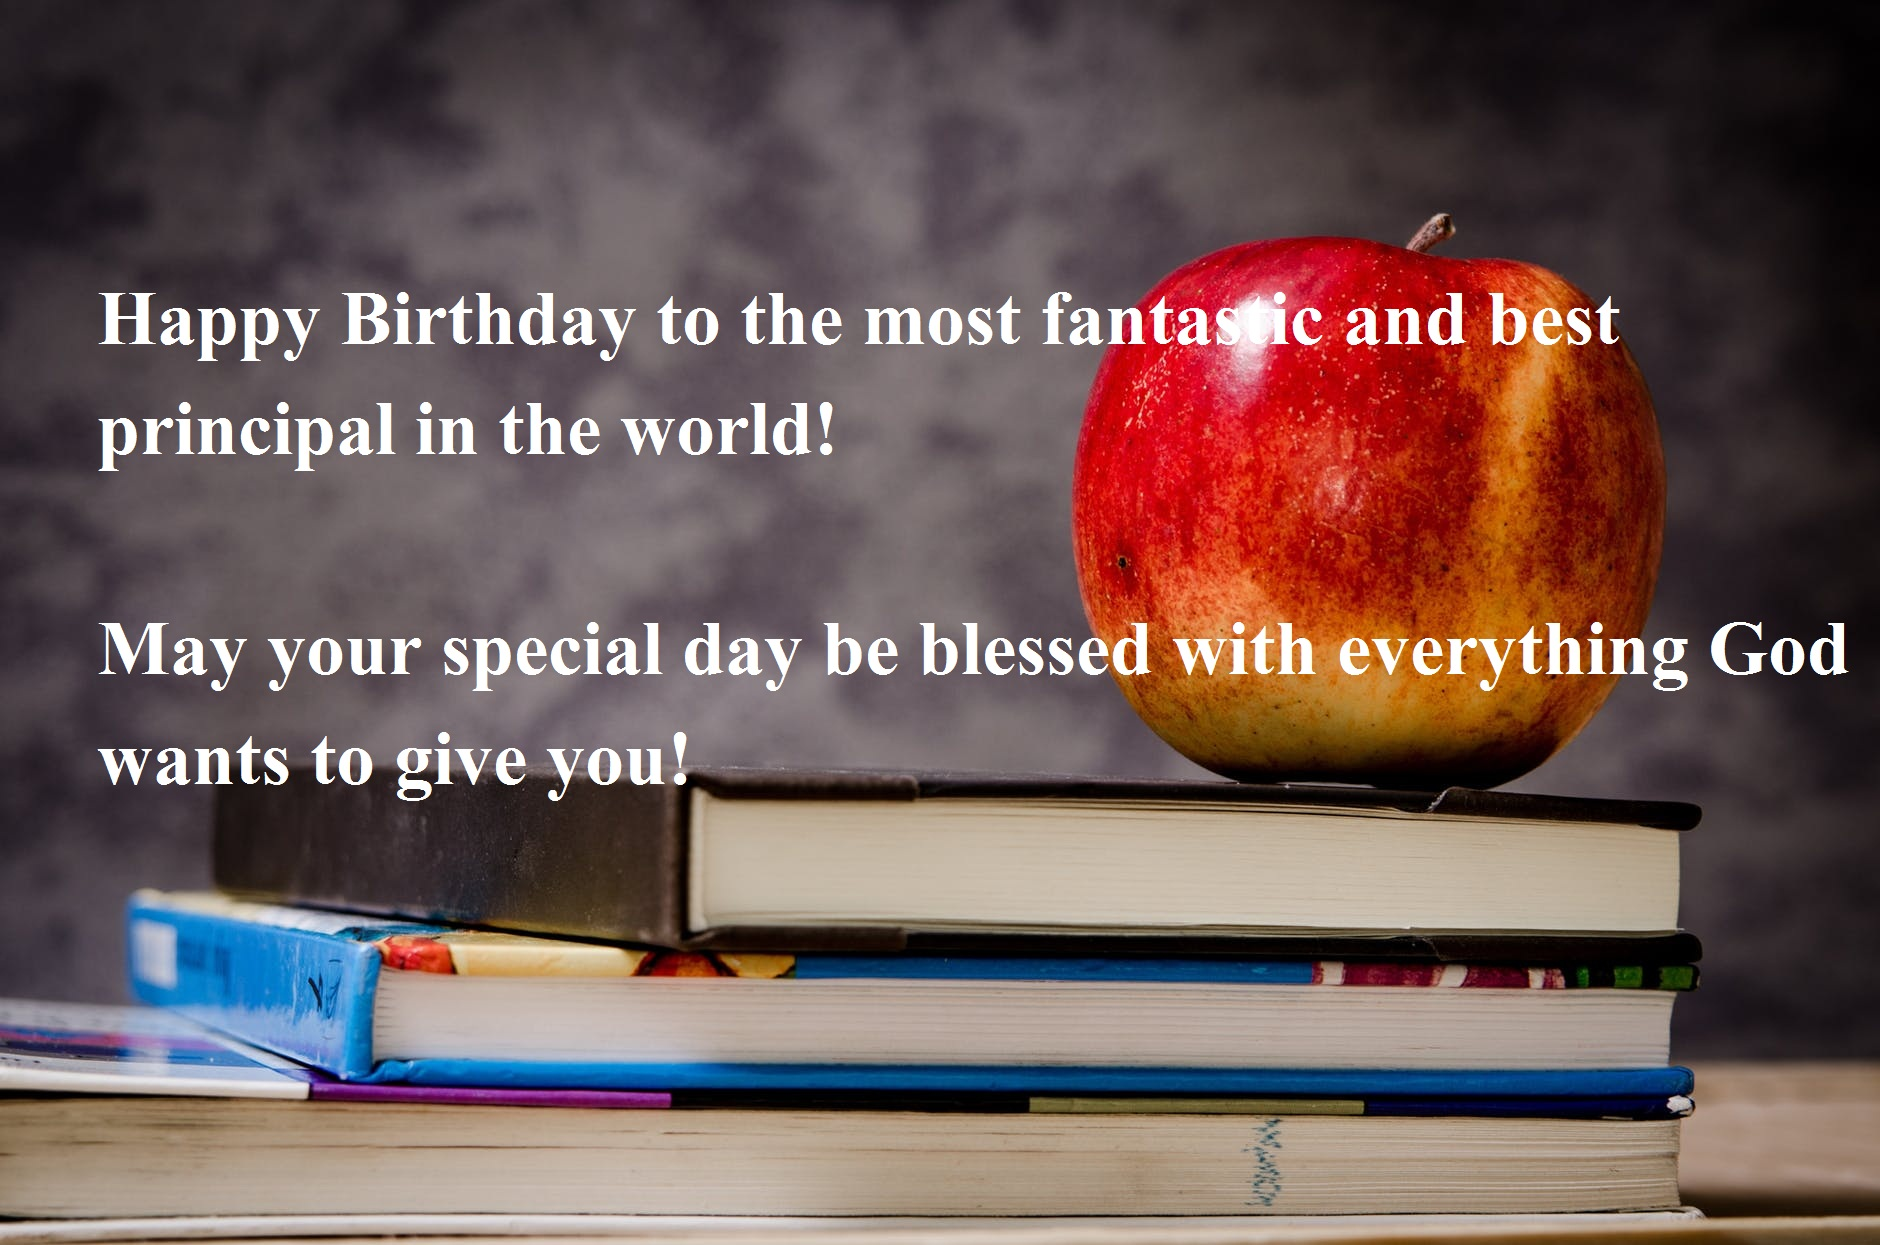 Happy Birthday Wishes for Teacher & Principal